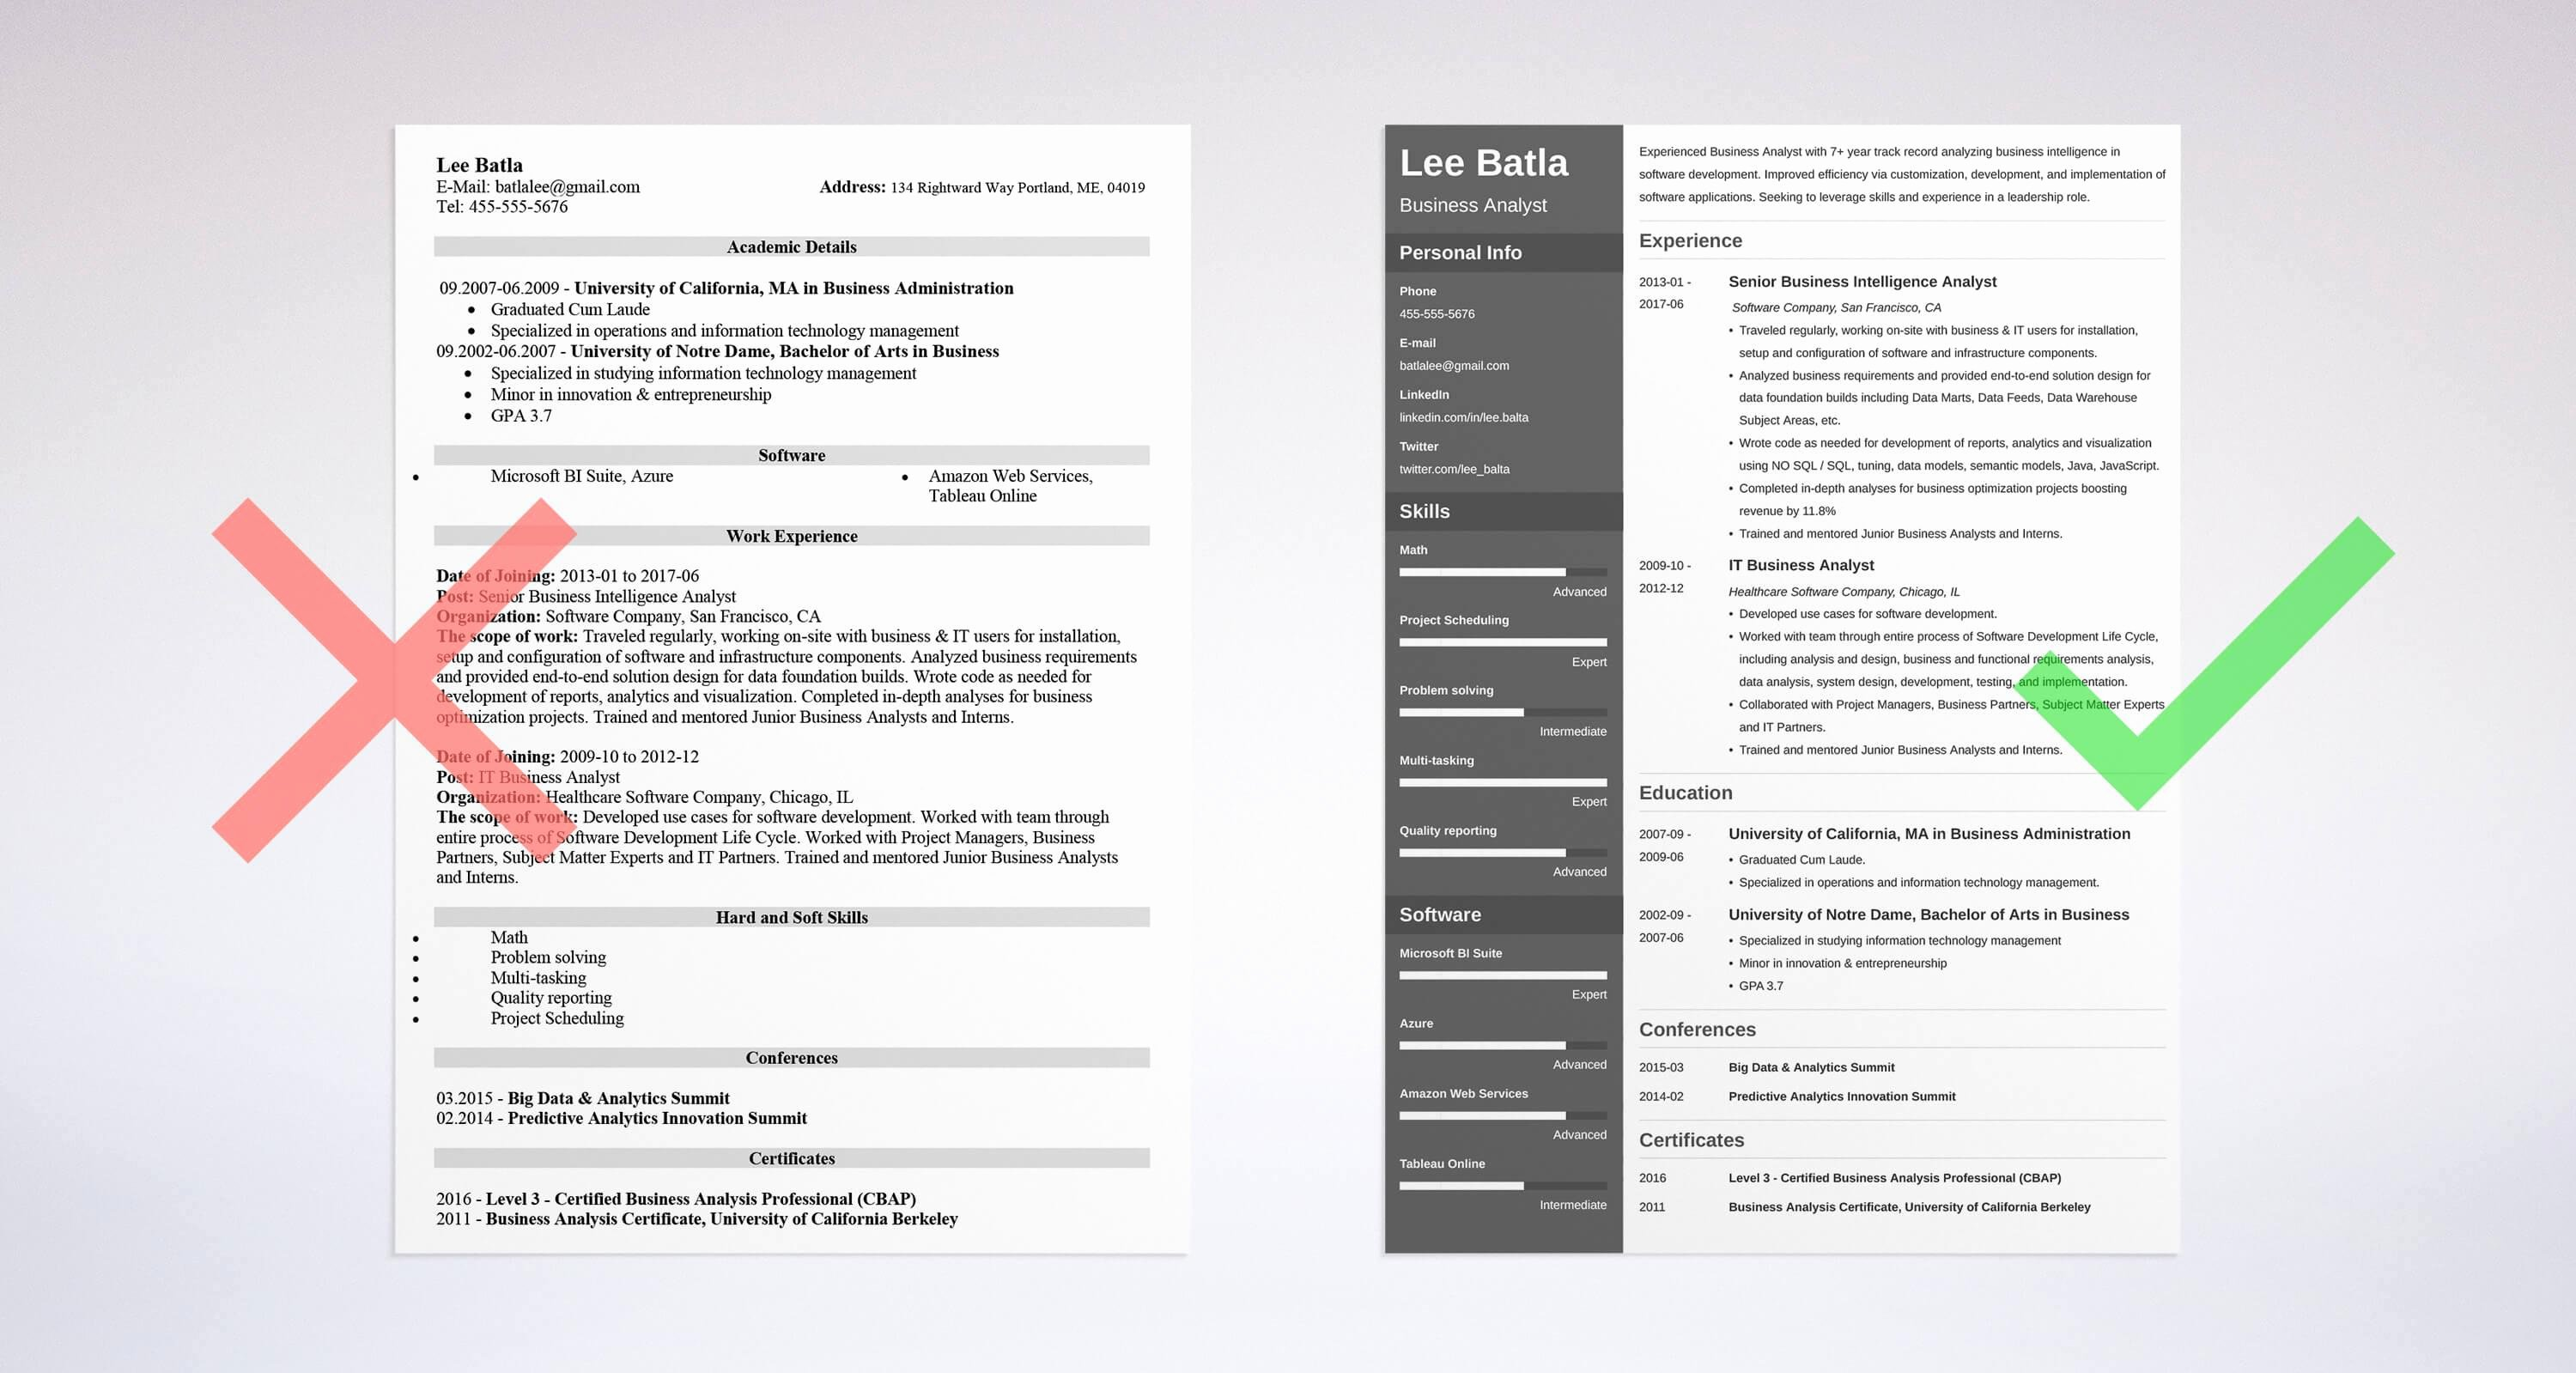 Resume Objectives Examples for Business Analyst